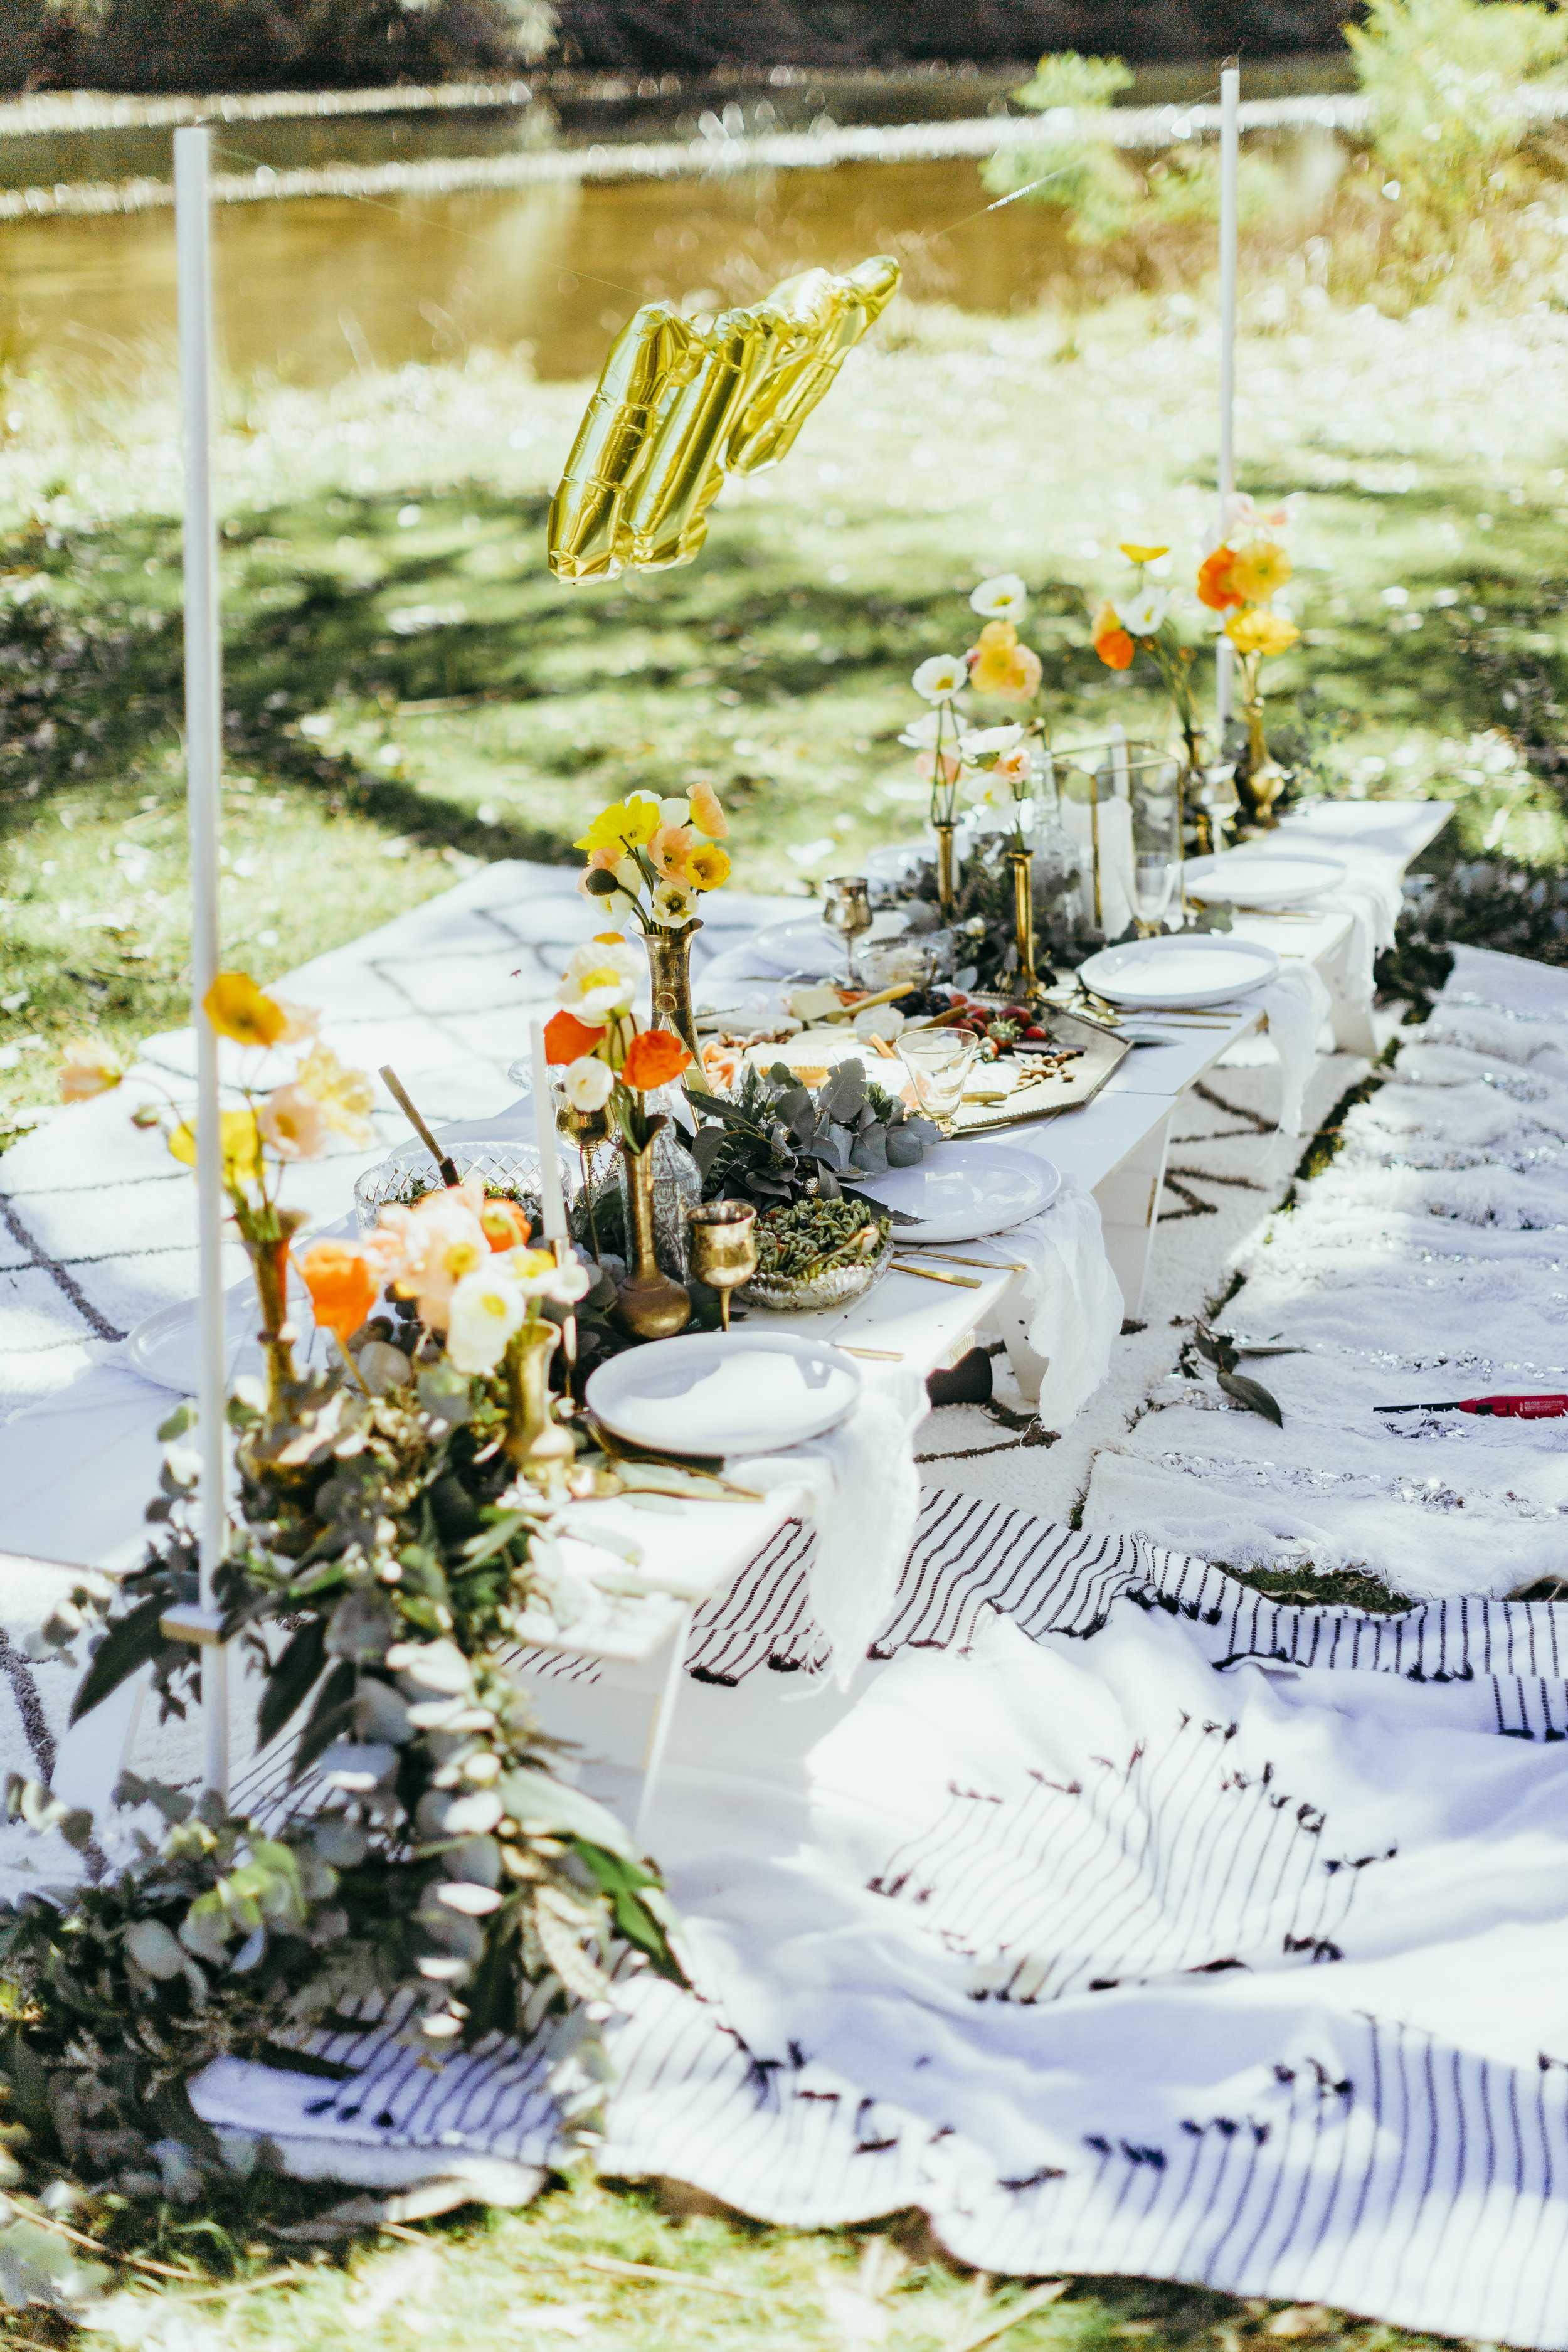 Birthday party styled with floral table settings, grazing plates, chocolate meringue, flower crowns and confetti